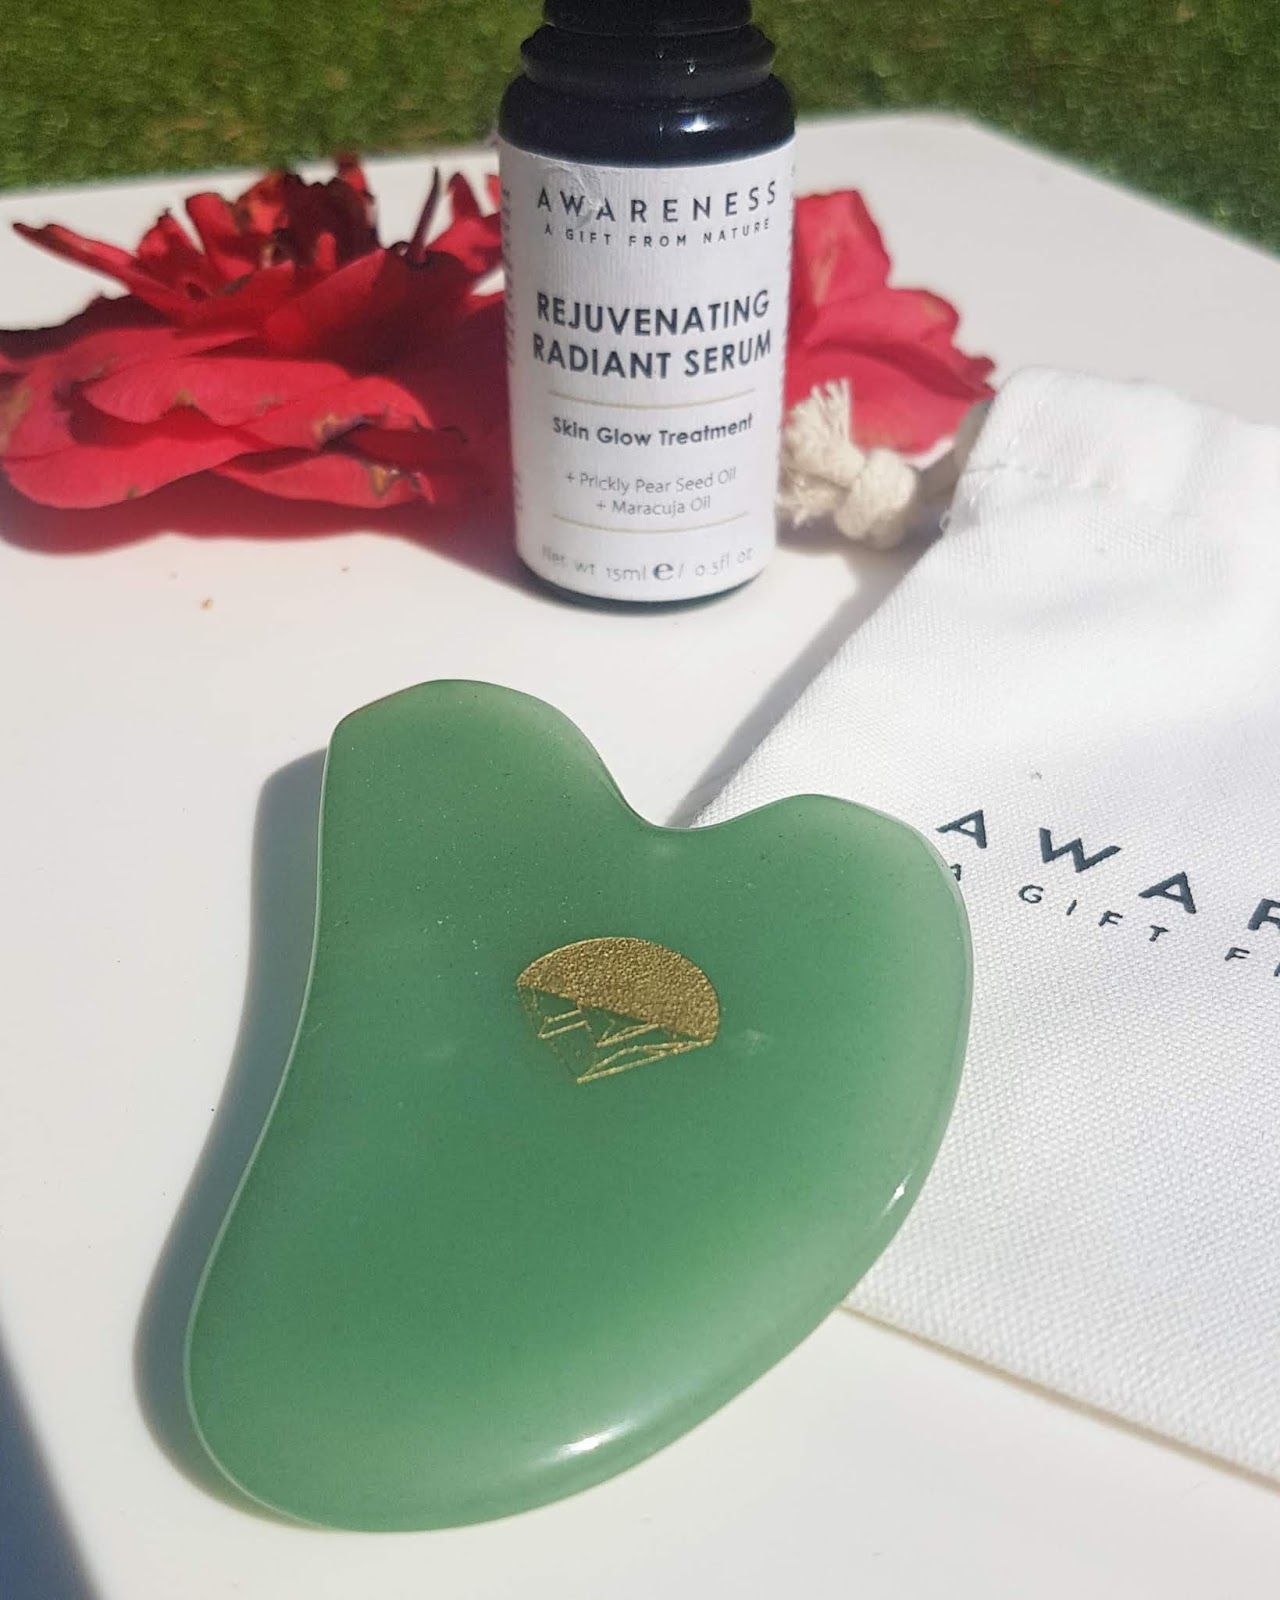 Awareness Organics jade gua sha tool